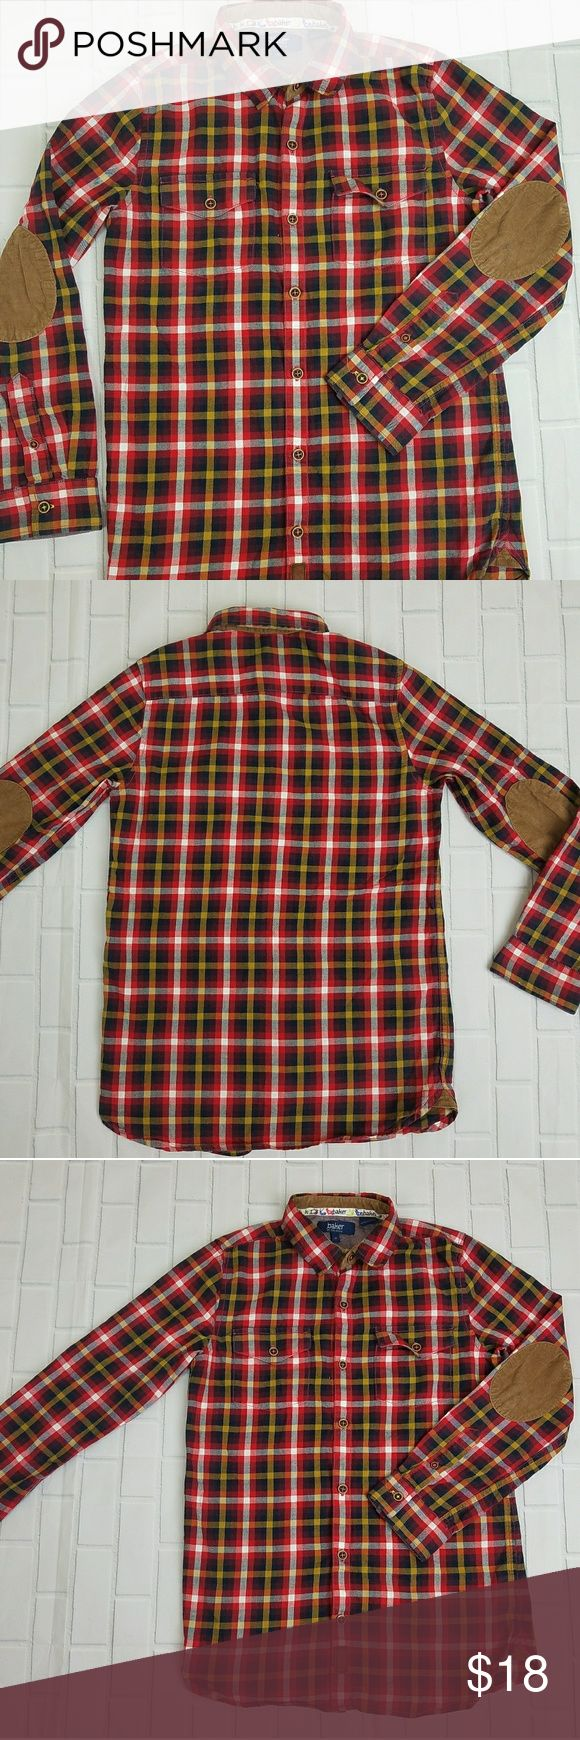 Baker by ted baker kids boy plaid sz 12🍁🌿🍂 Baker by Ted Baker kids boys long sleeves button down shirt with elbow patches size 12 Baker by Ted Baker Shirts & Tops Button Down Shirts